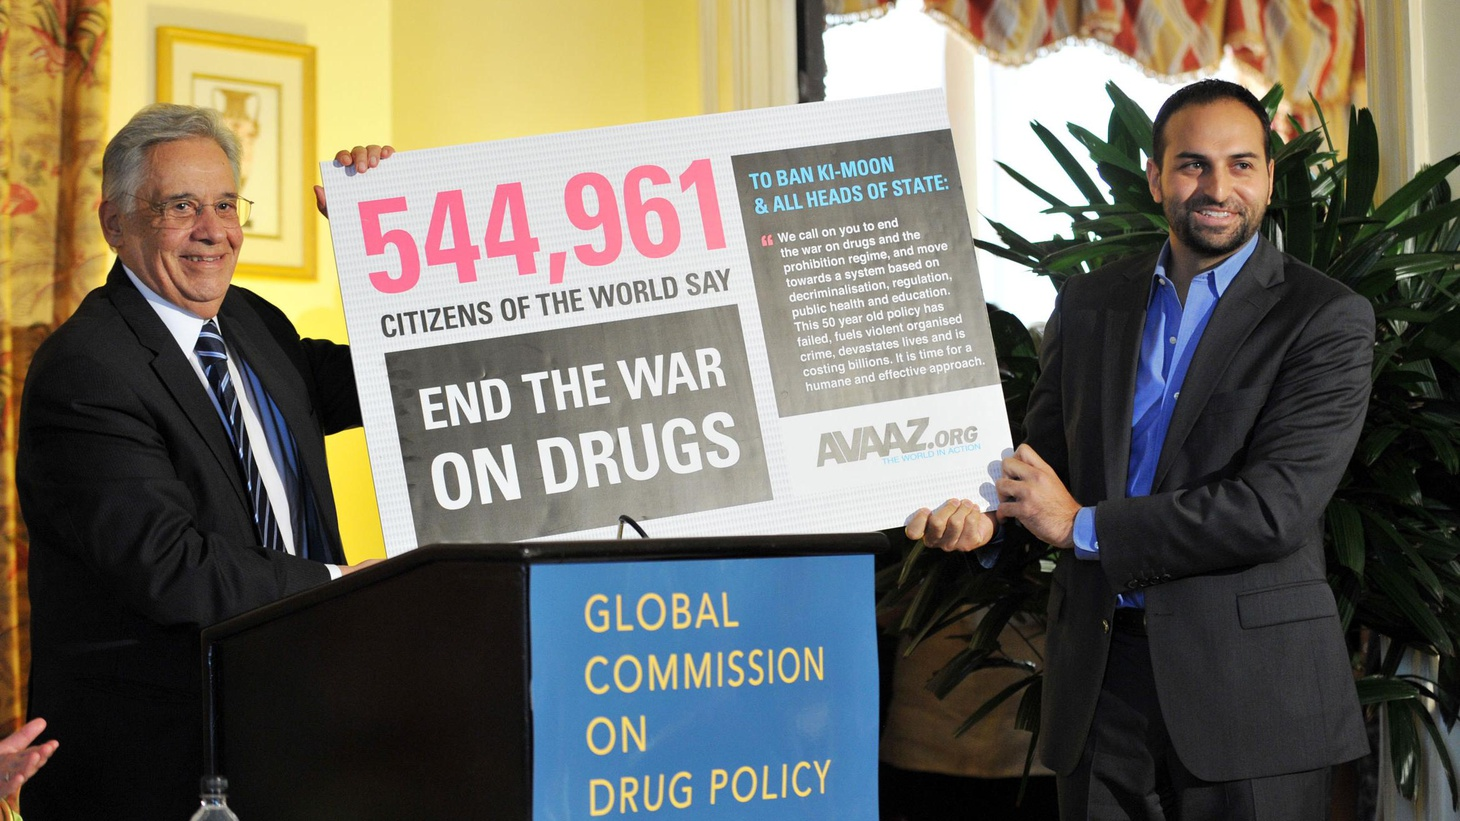 """A high-profile international commission says the """"War on Drugs"""" is an expensive failure, and that drug addiction should be considered a health problem instead of a crime...."""